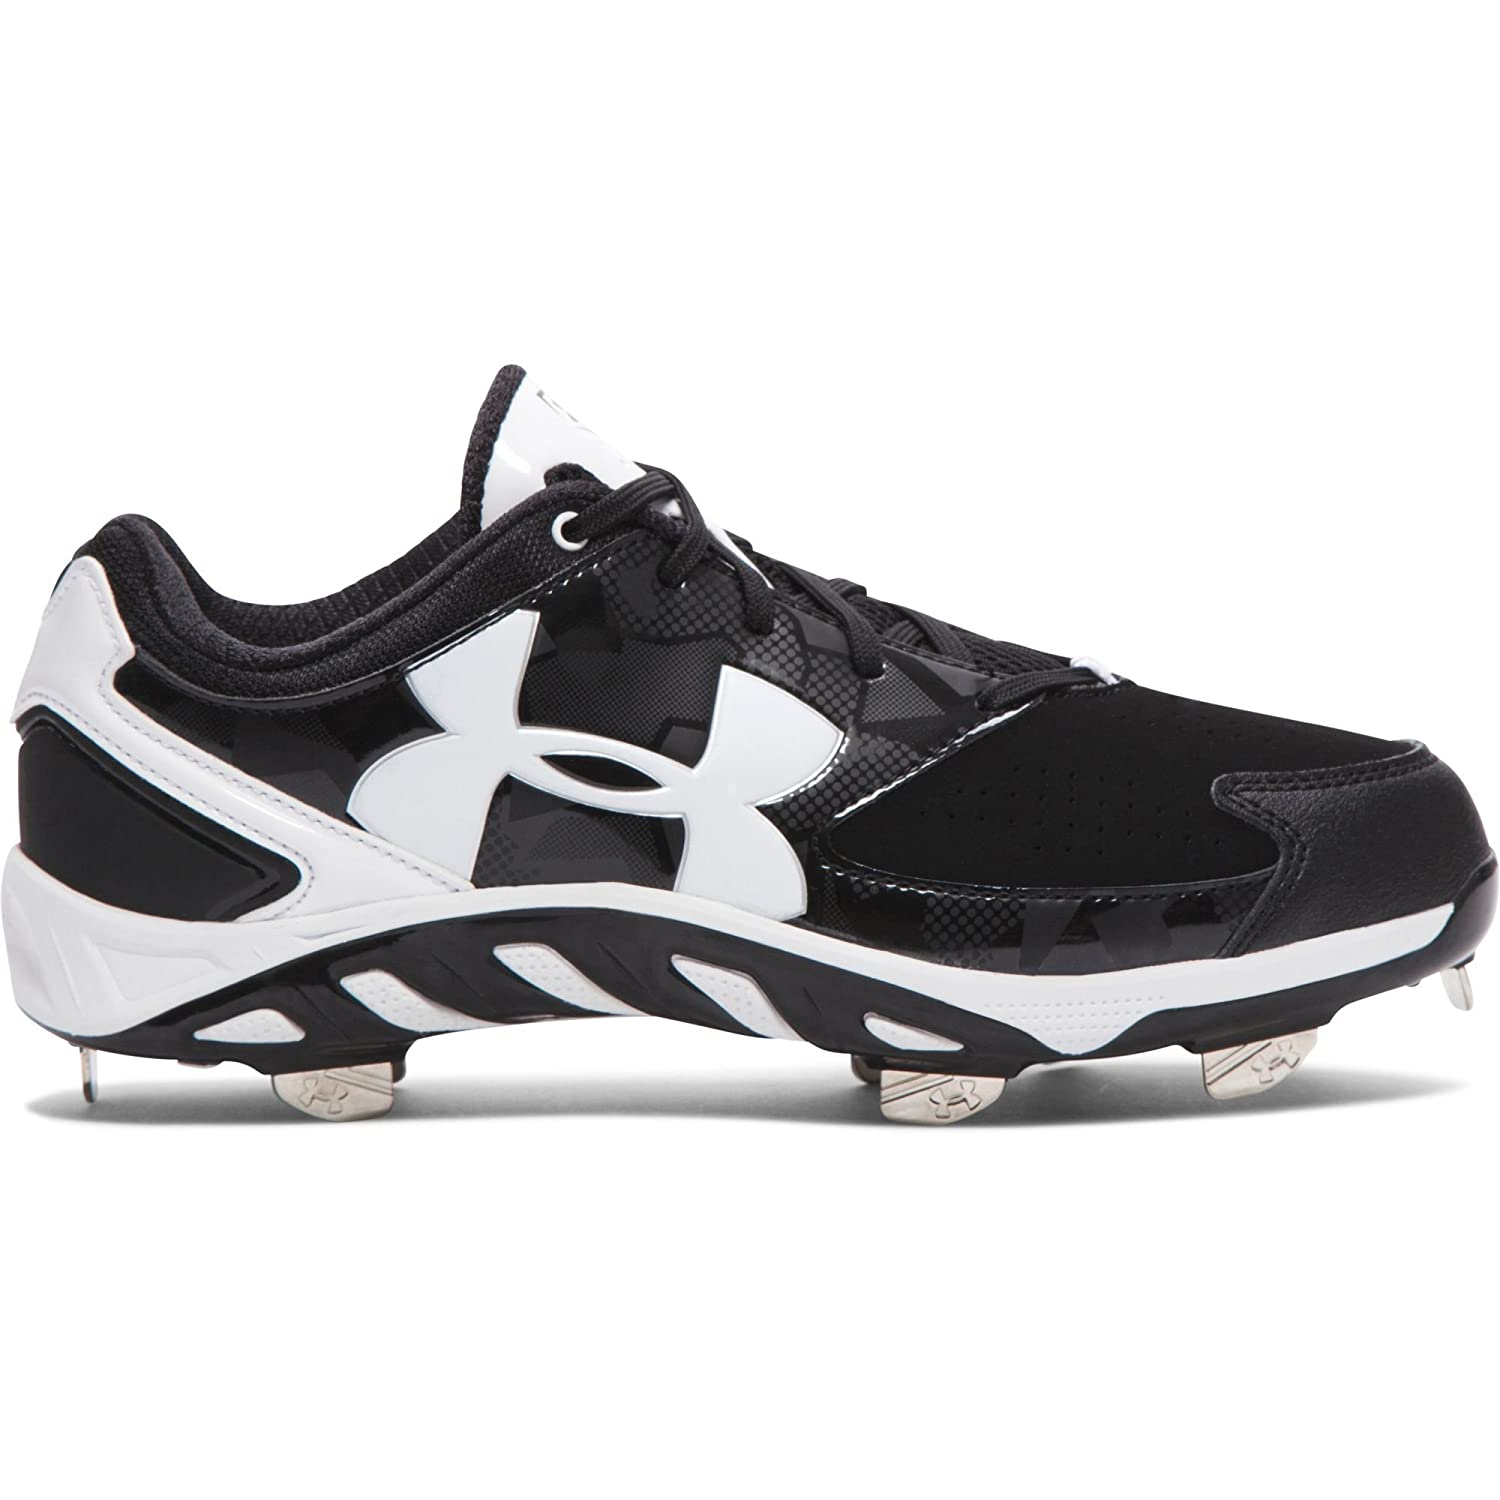 Under Armour Women's Spine Glyde Softball Low Metal Cleats 1264179-011